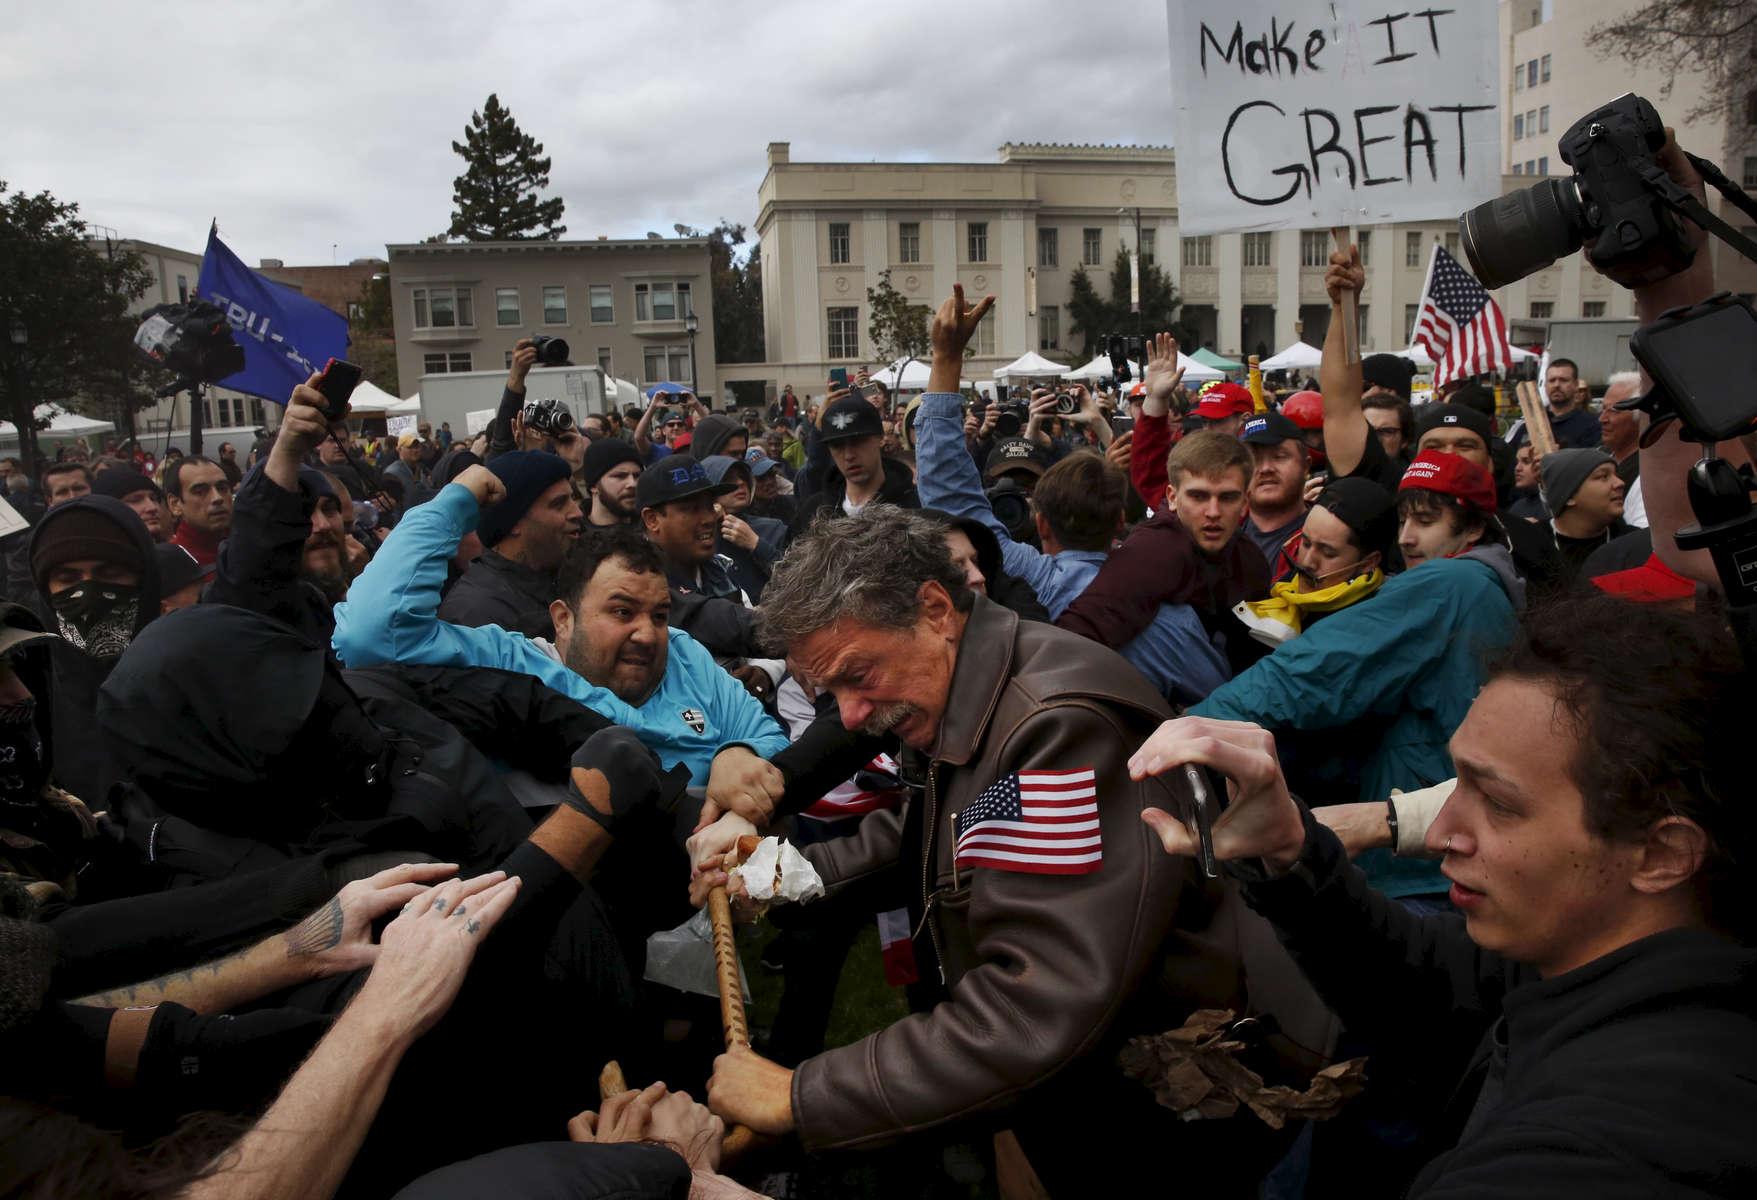 Tom Condon of San Francisco, center, a Trump supporter, becomes entangled in the center of a fight after attempting to push anti-fascist protesters back with his cane during a Pro-President Donald Trump rally and march at the Martin Luther King Jr. Civic Center park March 4, 2017 in Berkeley, Calif.